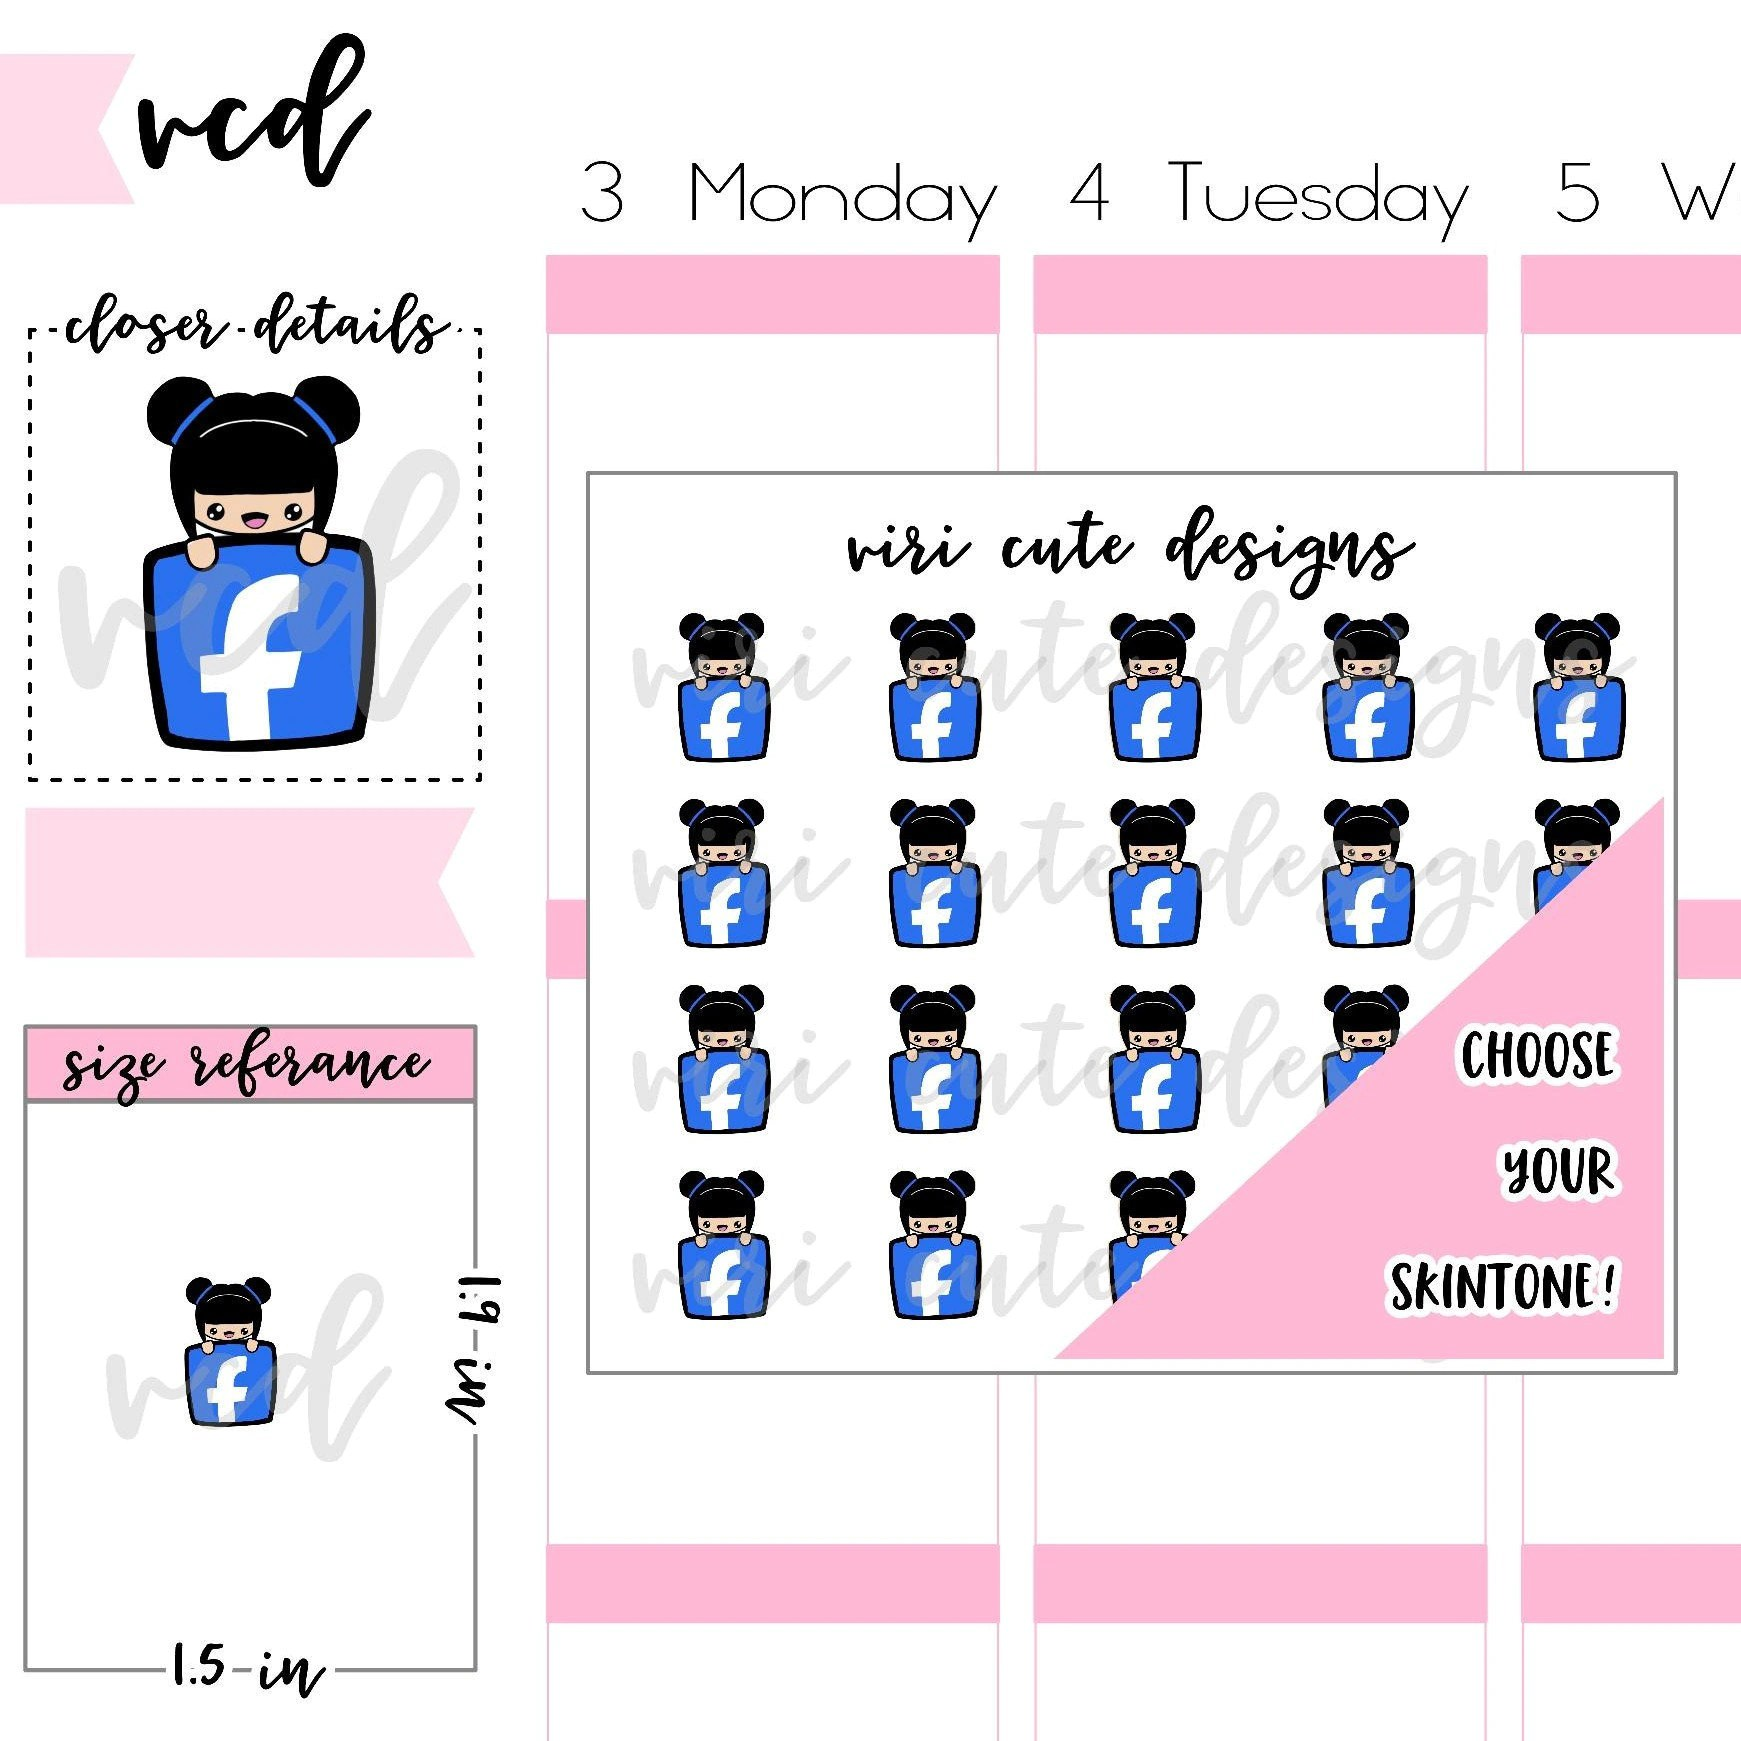 Cute Stickers For Facebook Kawaii Facebook Planner Stickers 101 Hand Drawn Icon Stickers Planner Stickers Kawaii Social Media Fb Stickers Viri Cute Designs